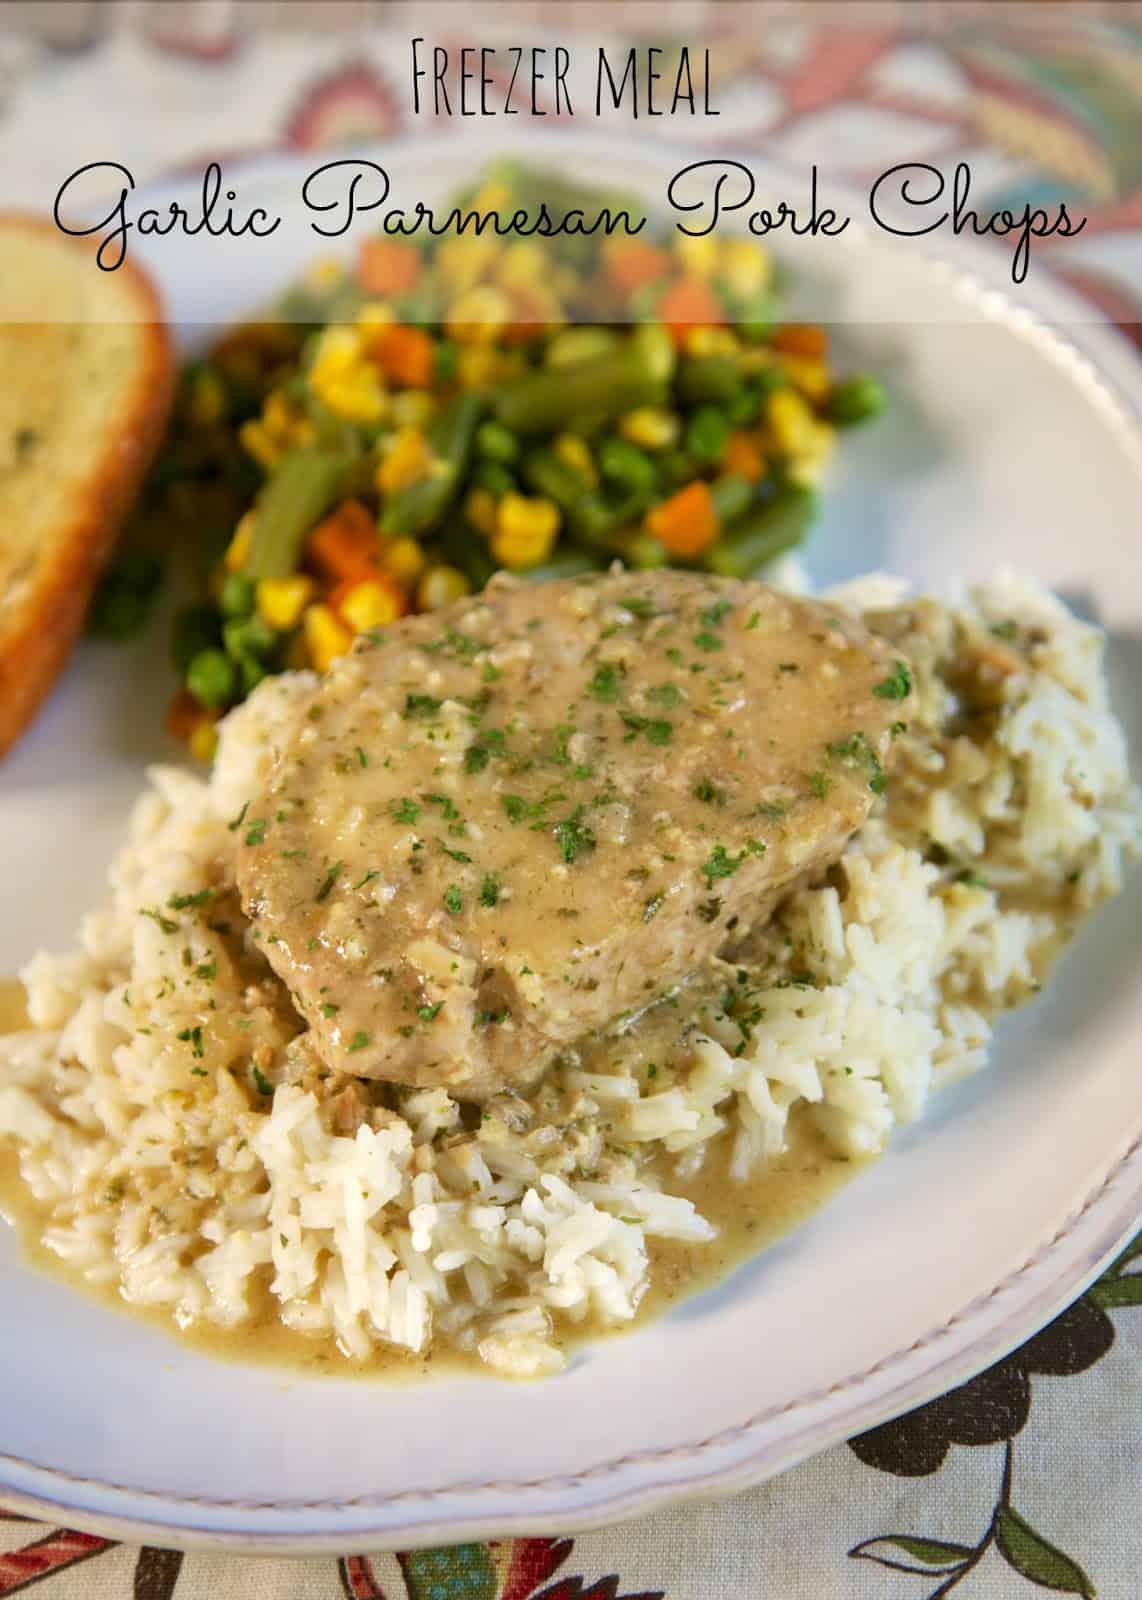 {Freezer Meal} Garlic Parmesan Pork Chops - SO delicious!!! Pork chops slow cooked in garlic seasoning, onion flakes, cream of chicken soup and apple juice. Seriously the most delicious pork chops we've ever eaten!! Can cook frozen in the slow cooker. #porkchops #slowcooker #freezermeal